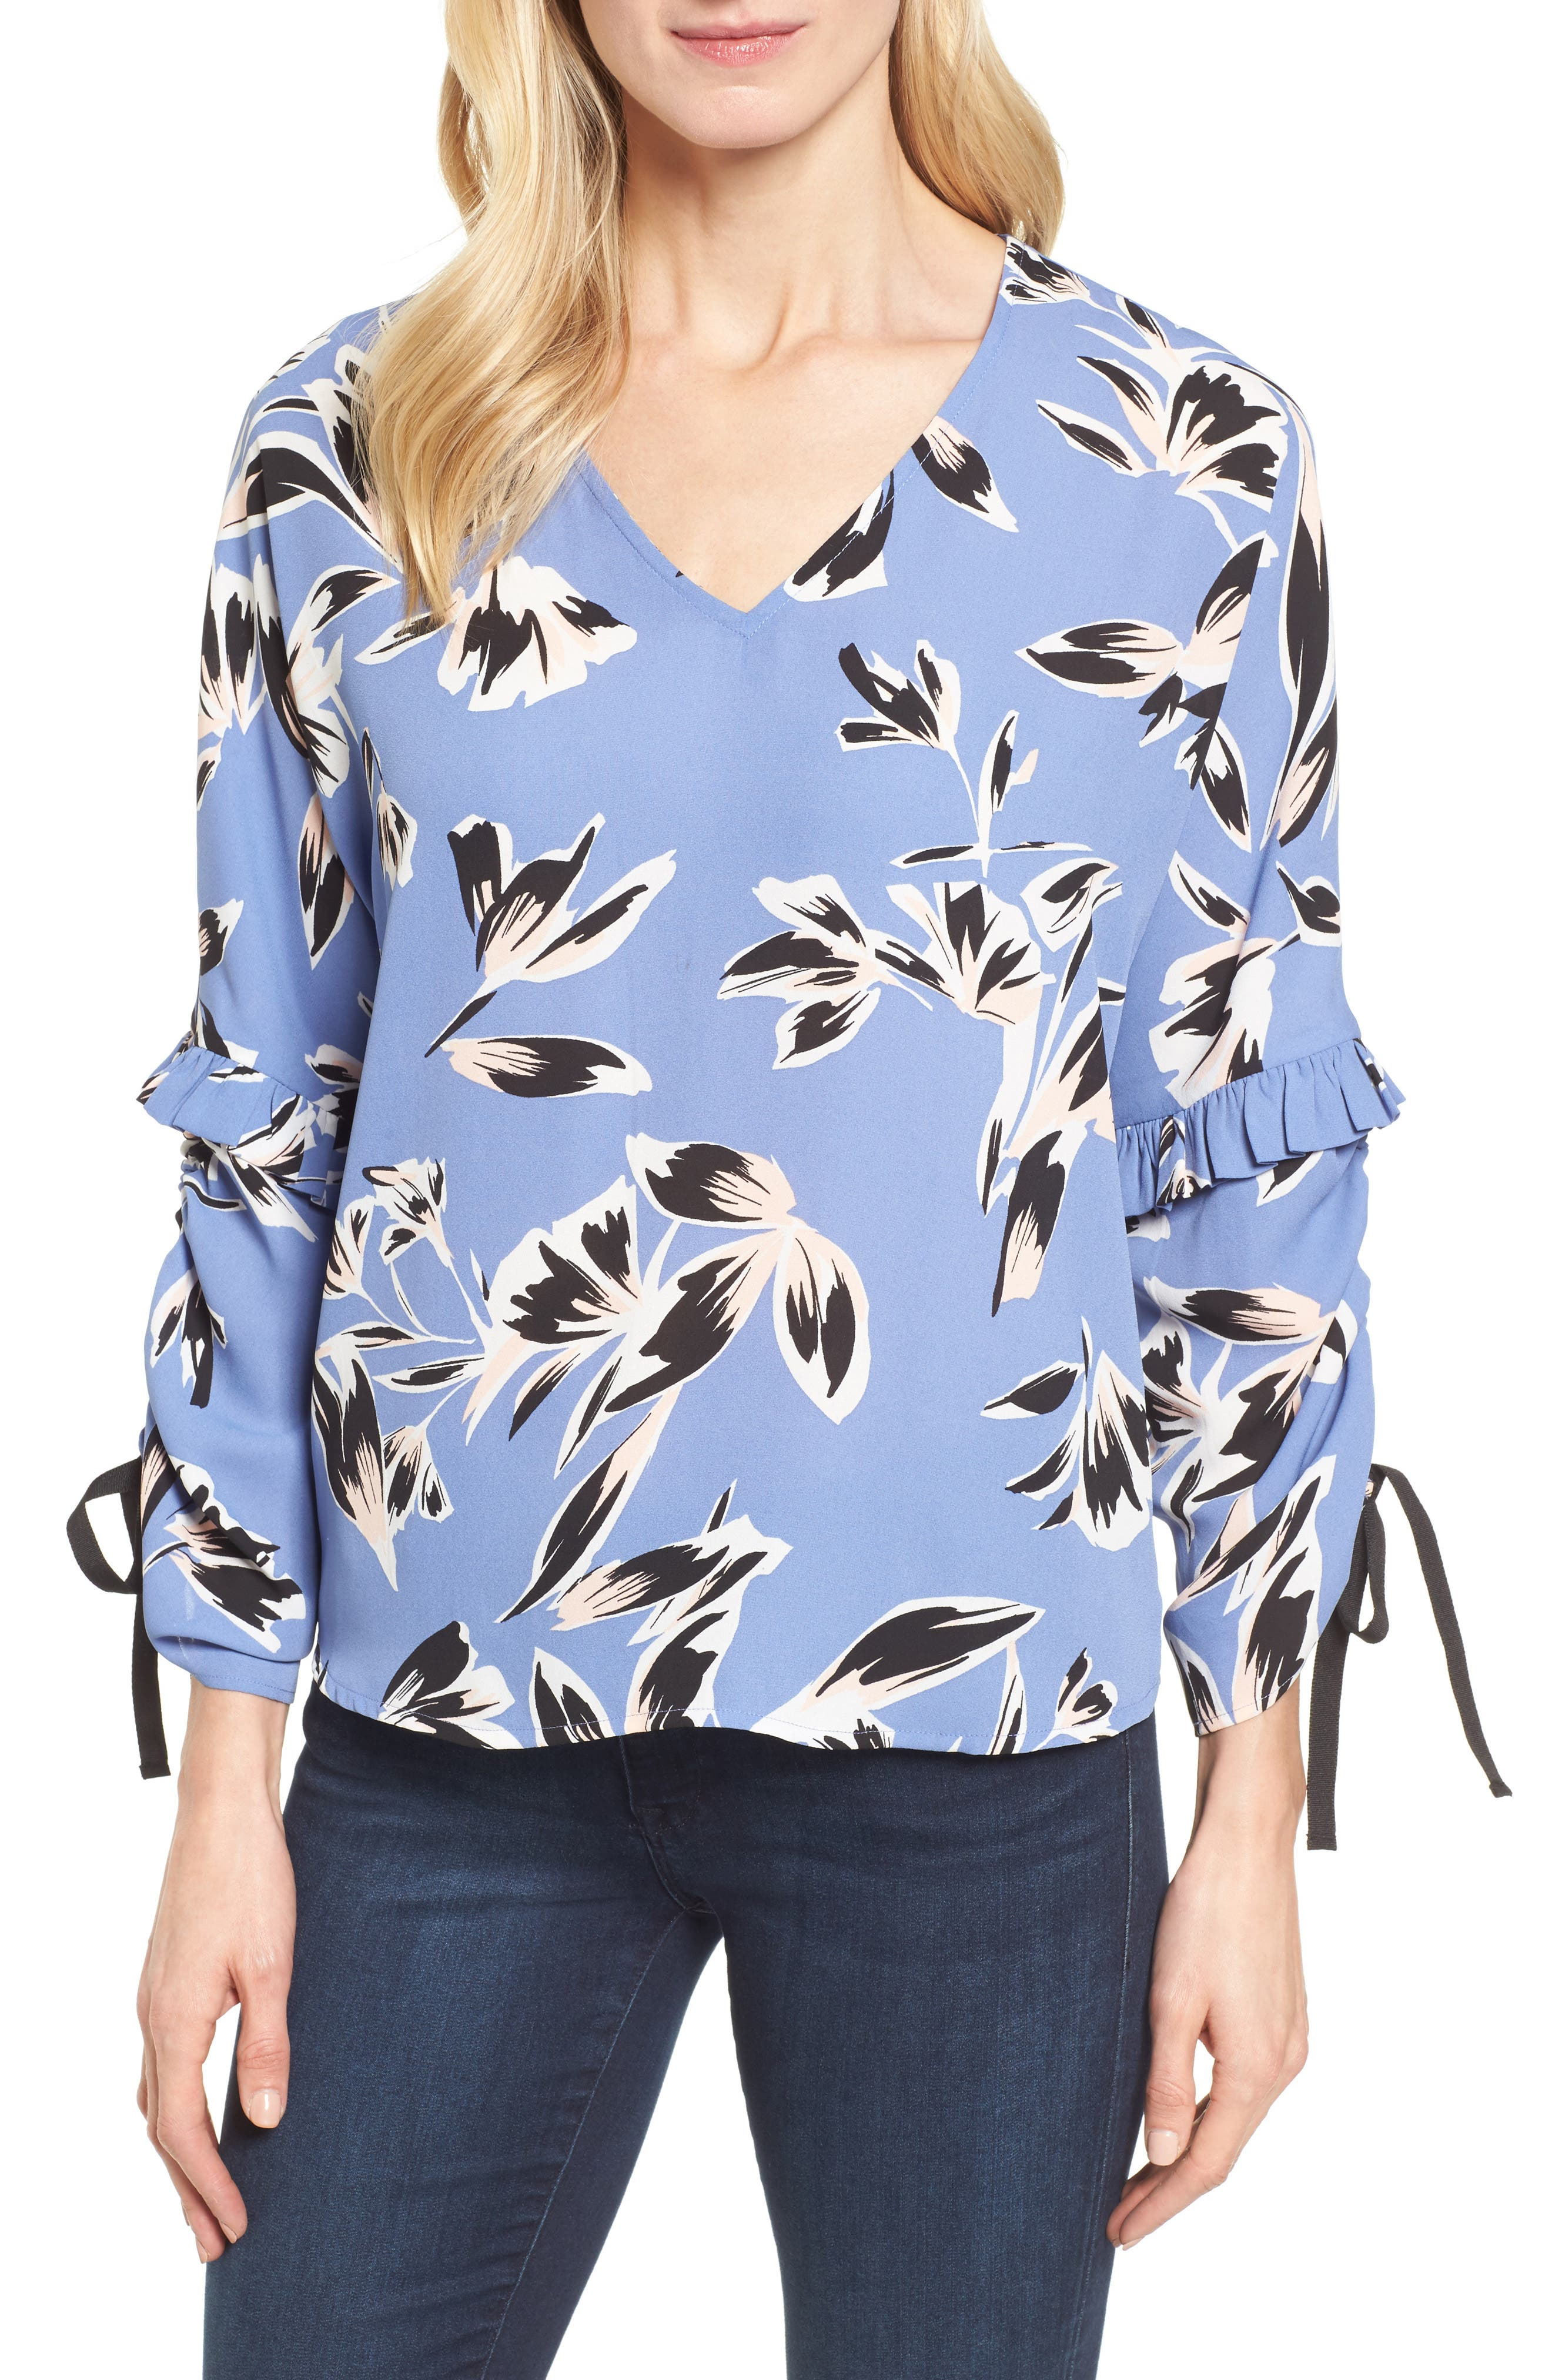 Ruched Tie Sleeve Top,                         Main,                         color, Blue- Pink Sketch Floral